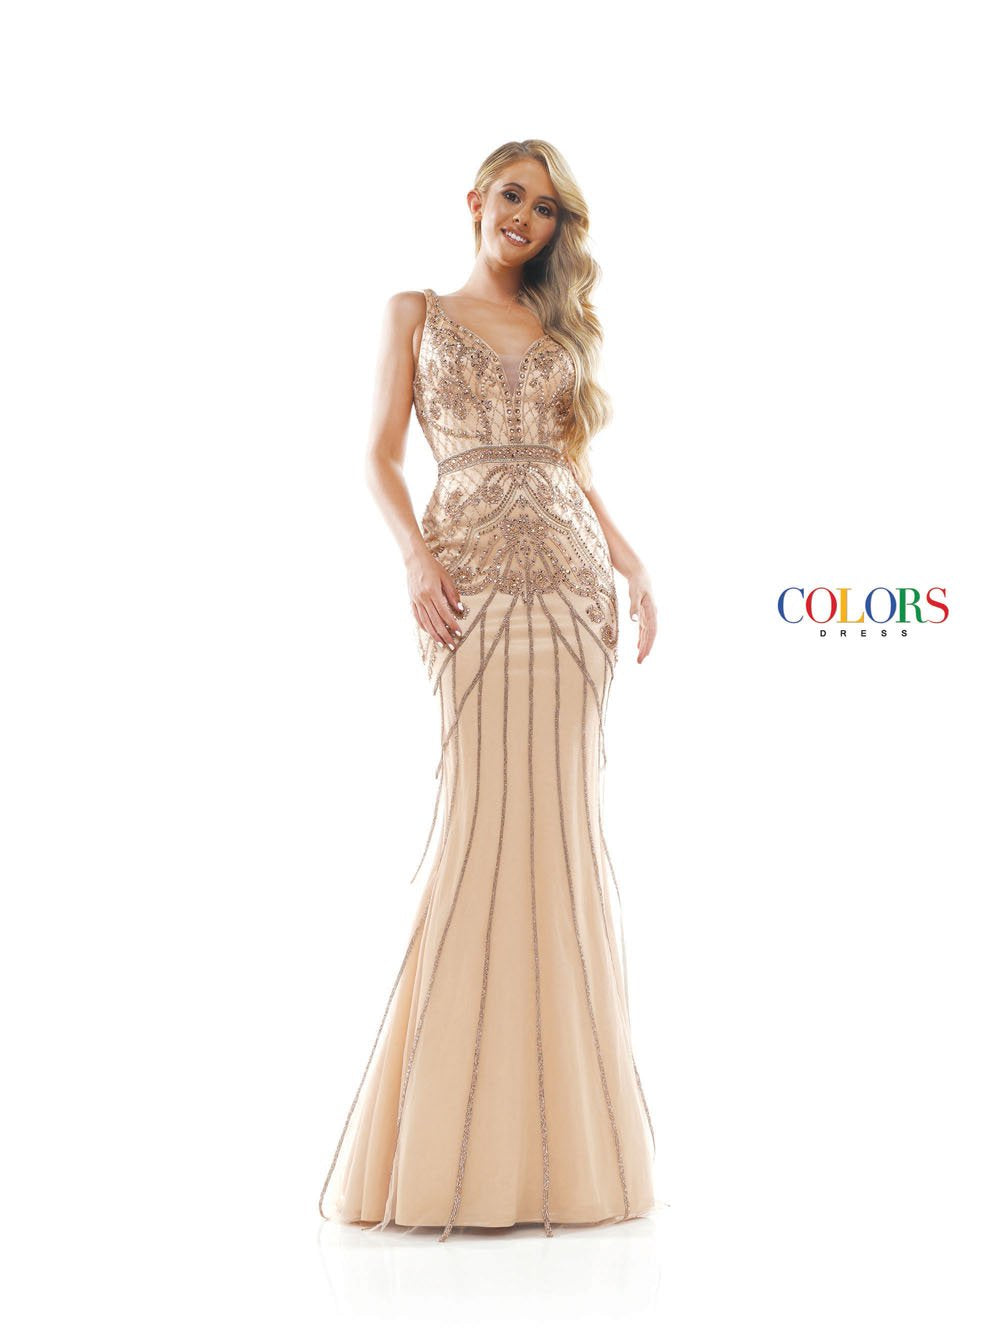 Colors Dress 2344 prom dress images.  Colors 2344 dresses are available in these colors: Nude, Navy.